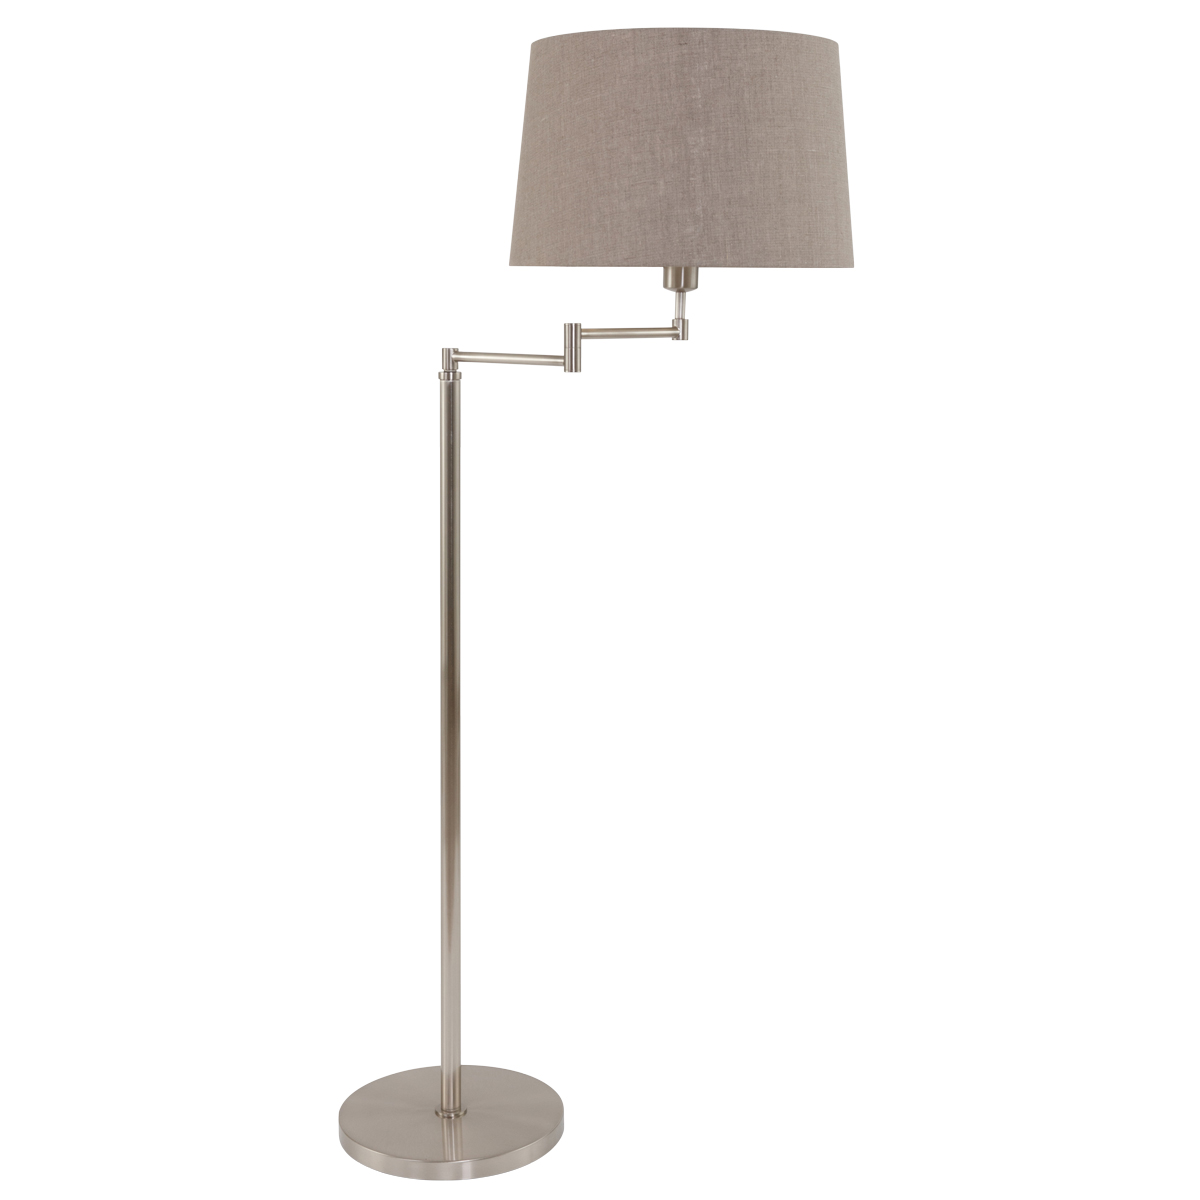 moderne stehlampen moderne stehlampen with moderne stehlampen cheap find this pin and more on. Black Bedroom Furniture Sets. Home Design Ideas